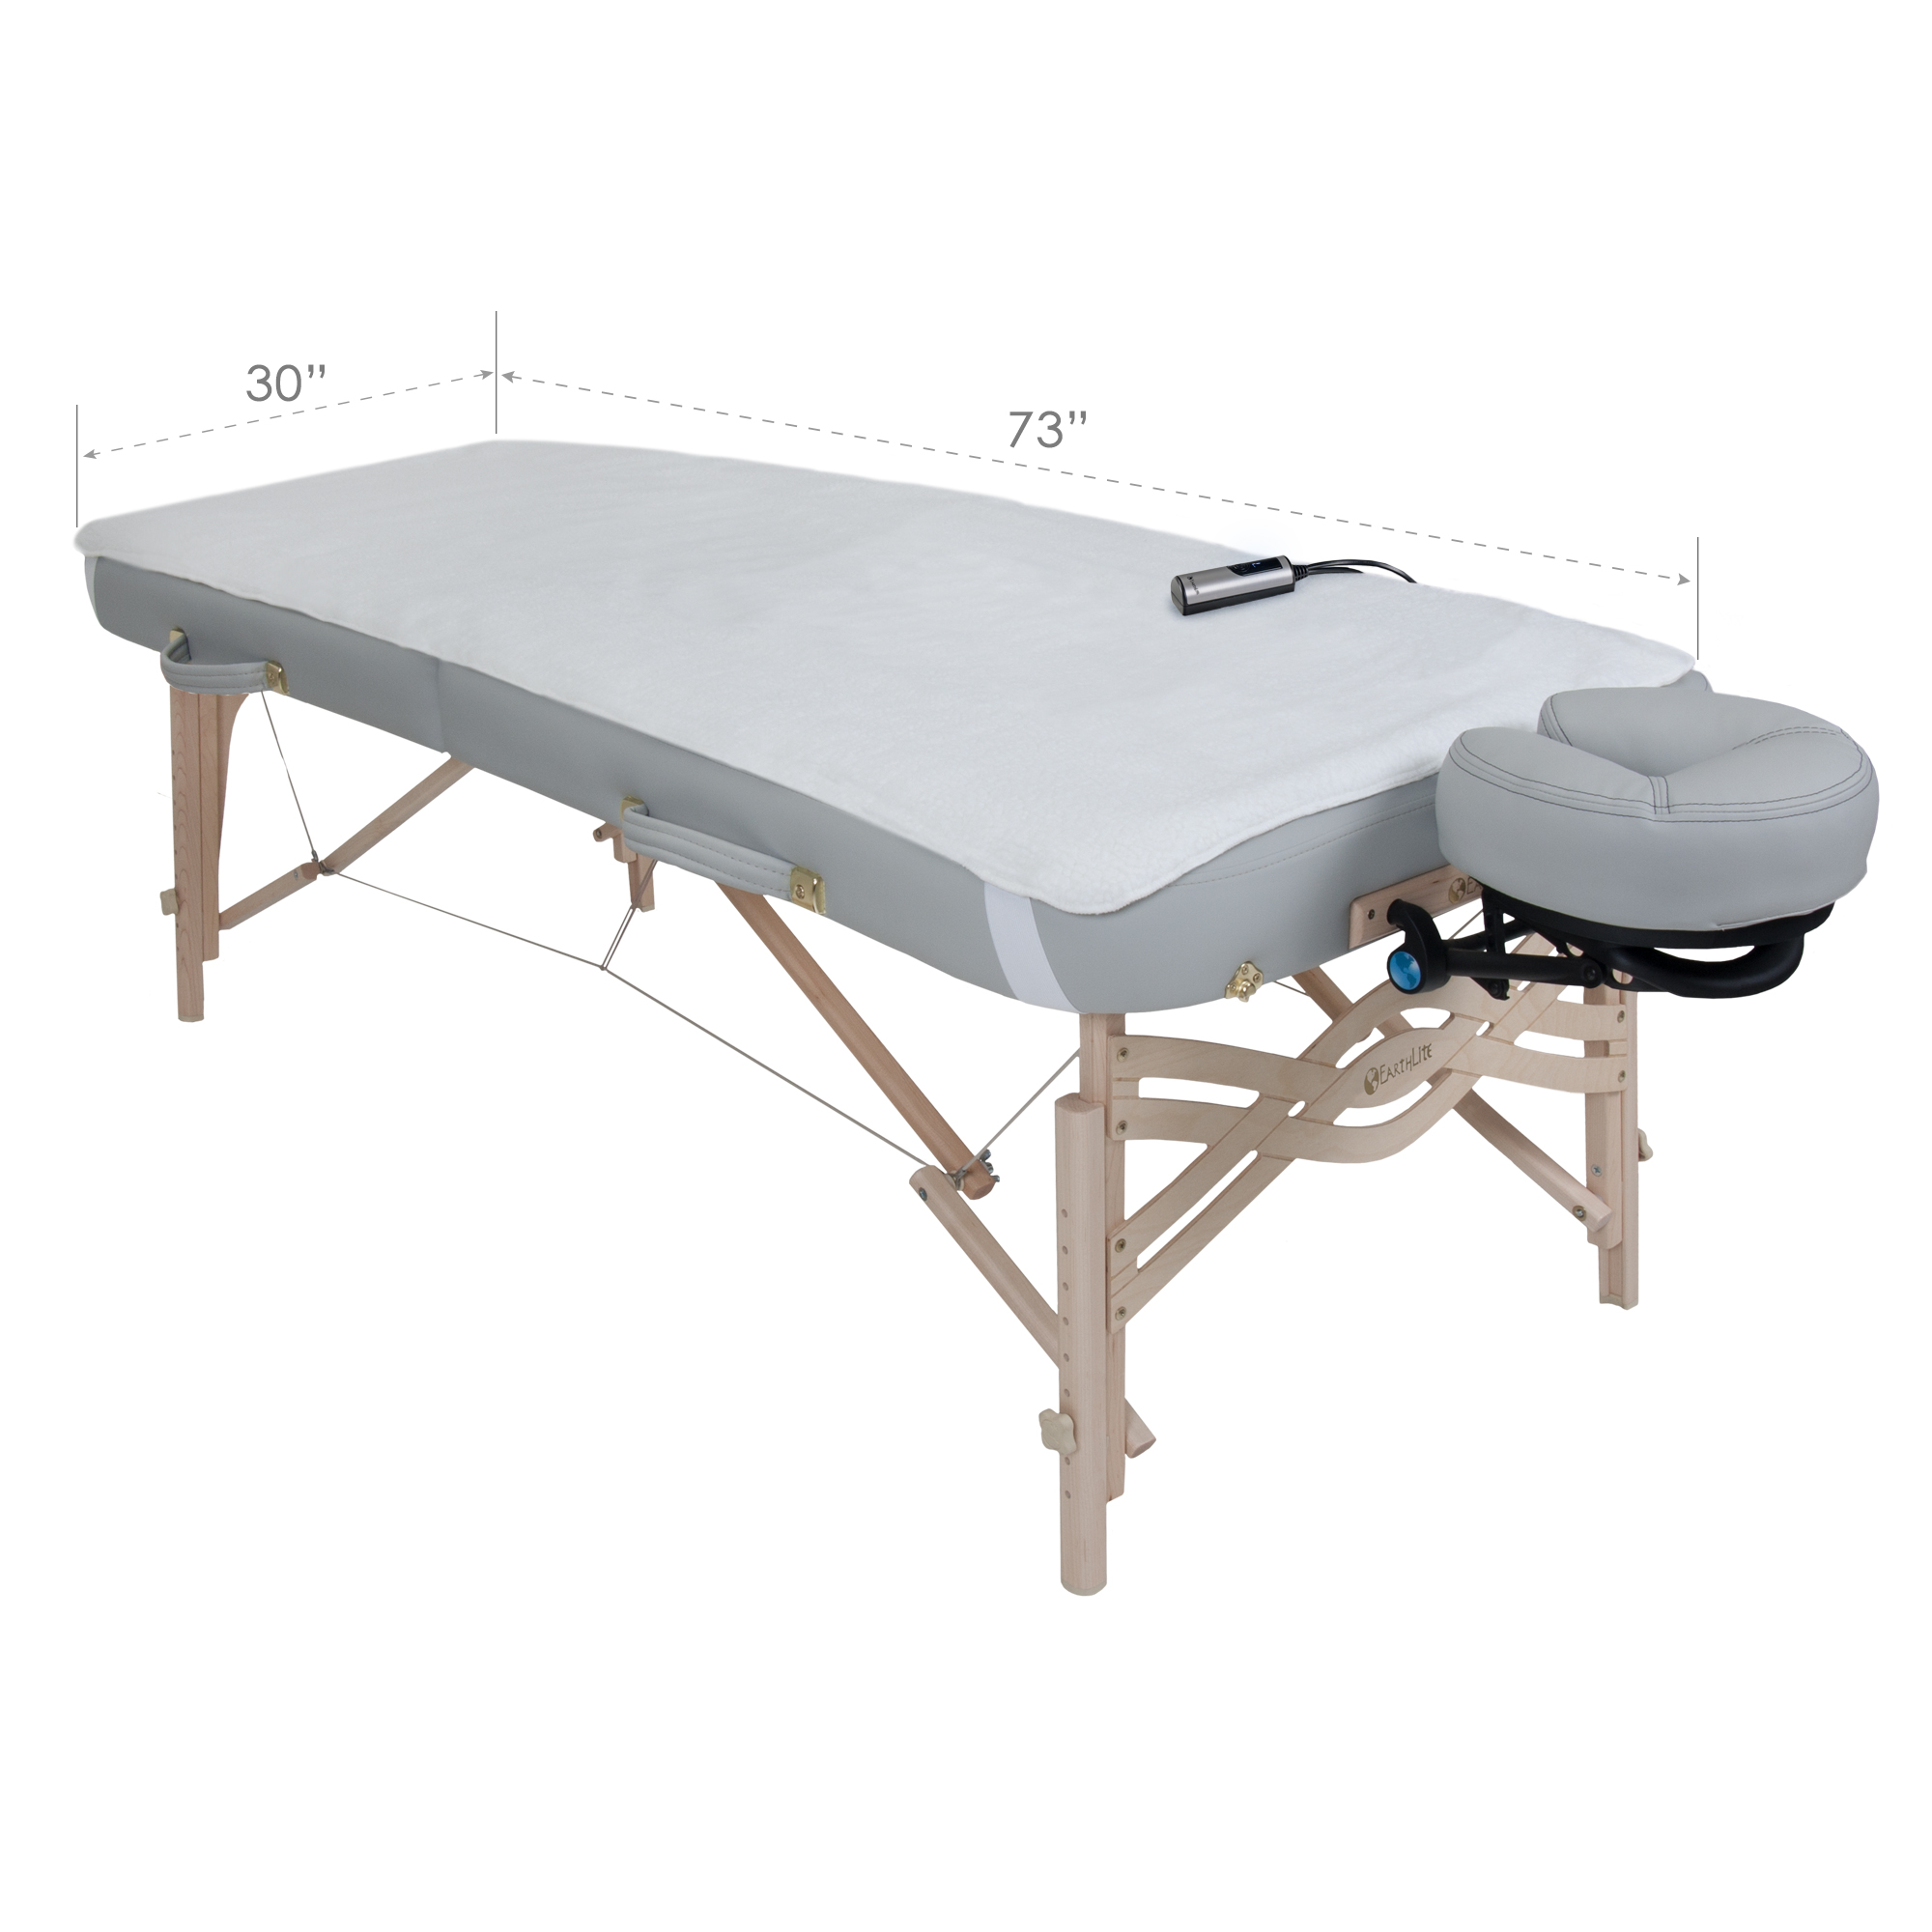 EARTHLITE Massage Table Warmer & Fleece Pad (2in1), 3 Heat Settings, 13ft Power Cord (New Improved Model)